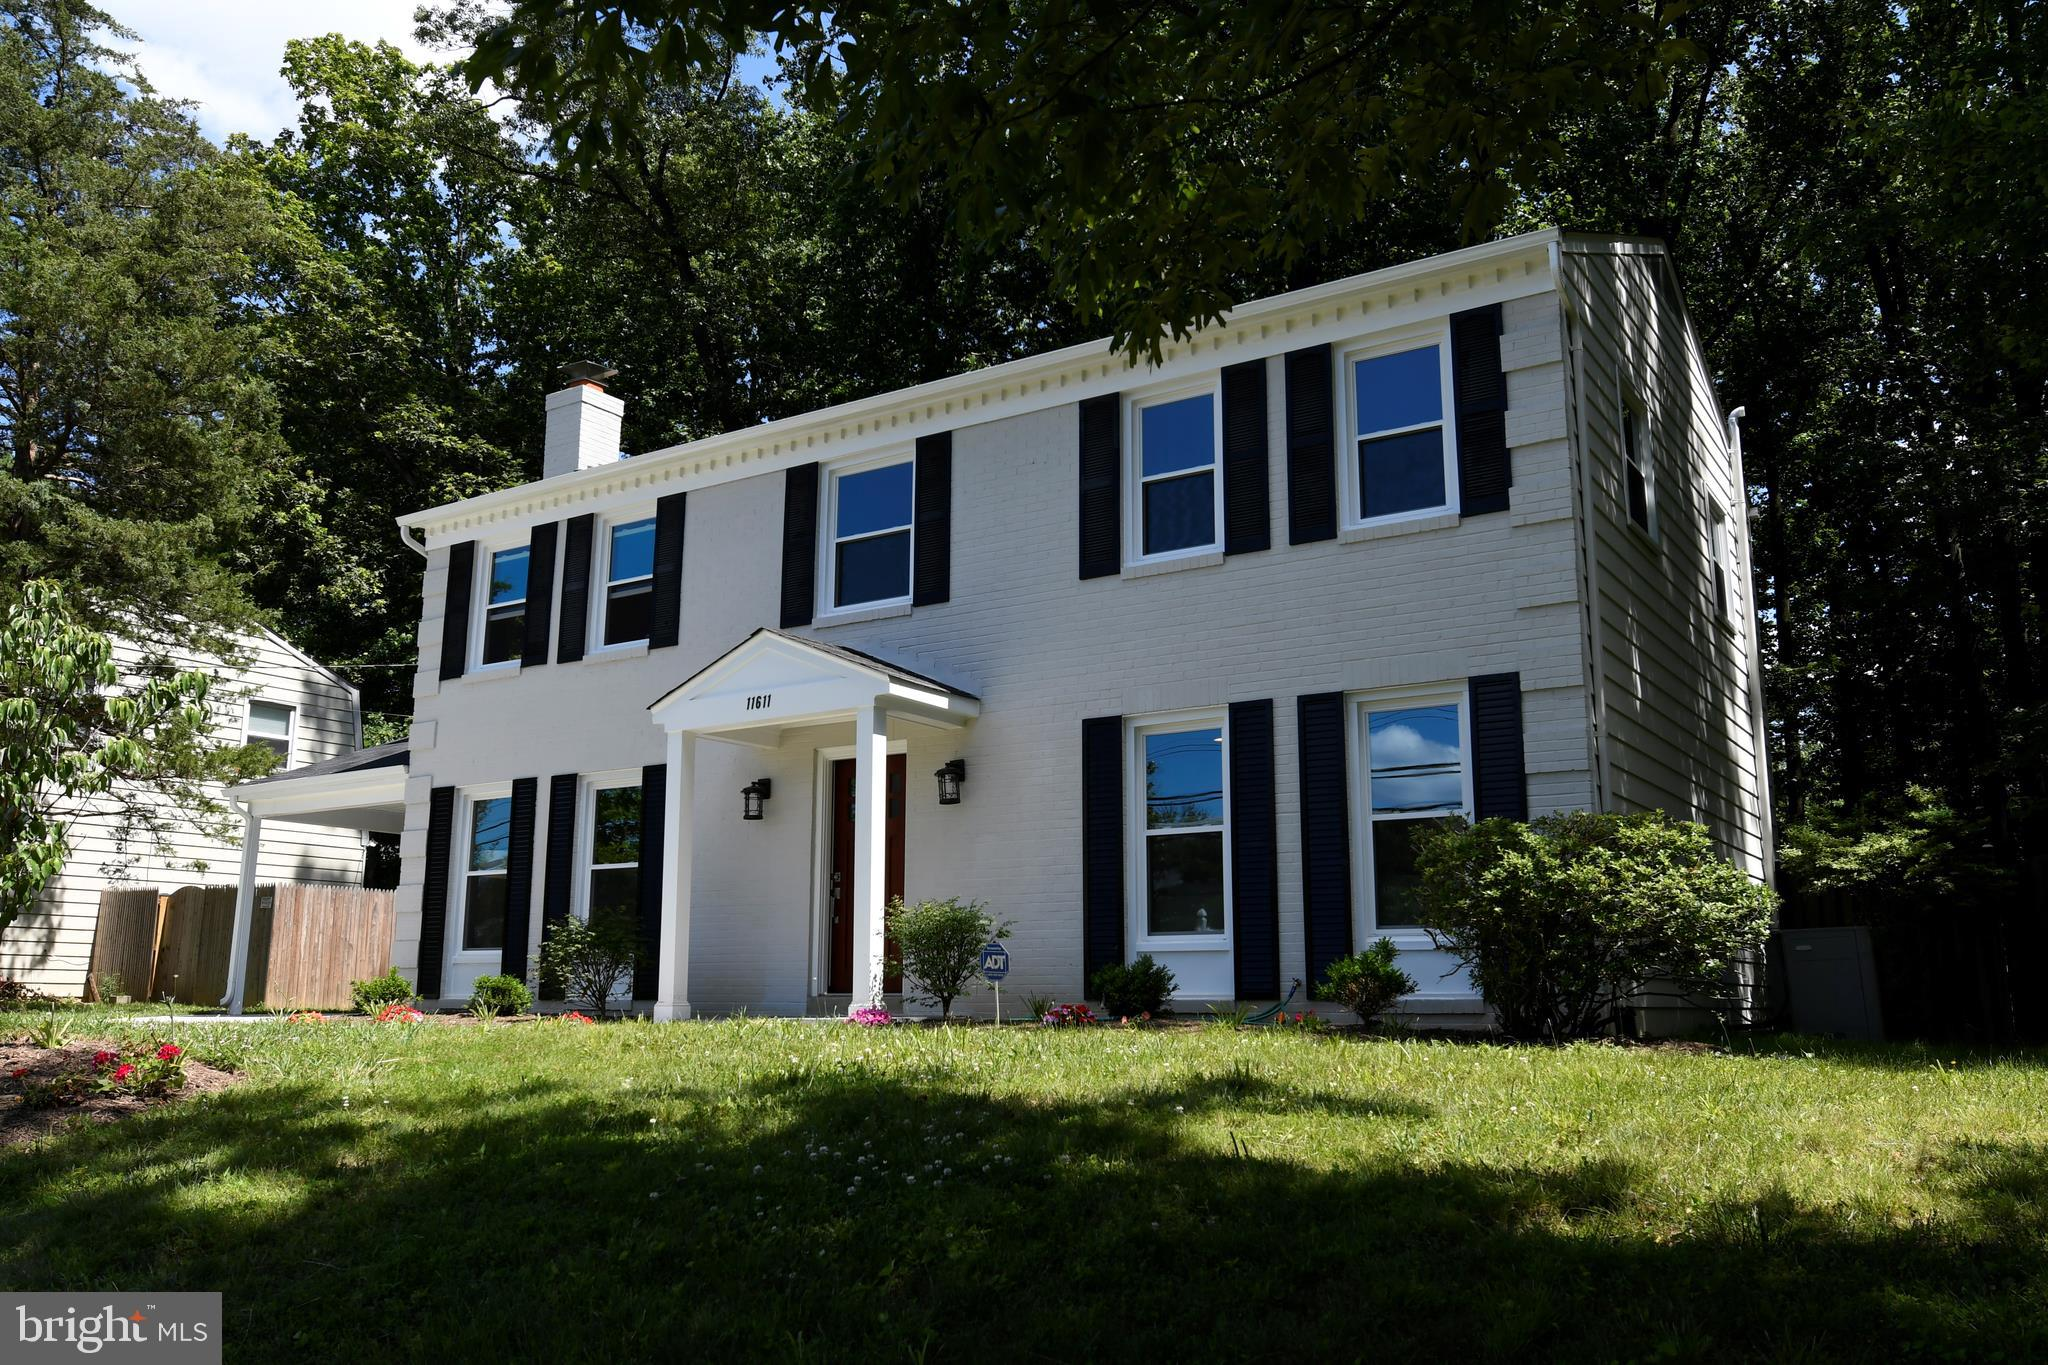 11611 KEMP MILL ROAD, SILVER SPRING, MD 20902